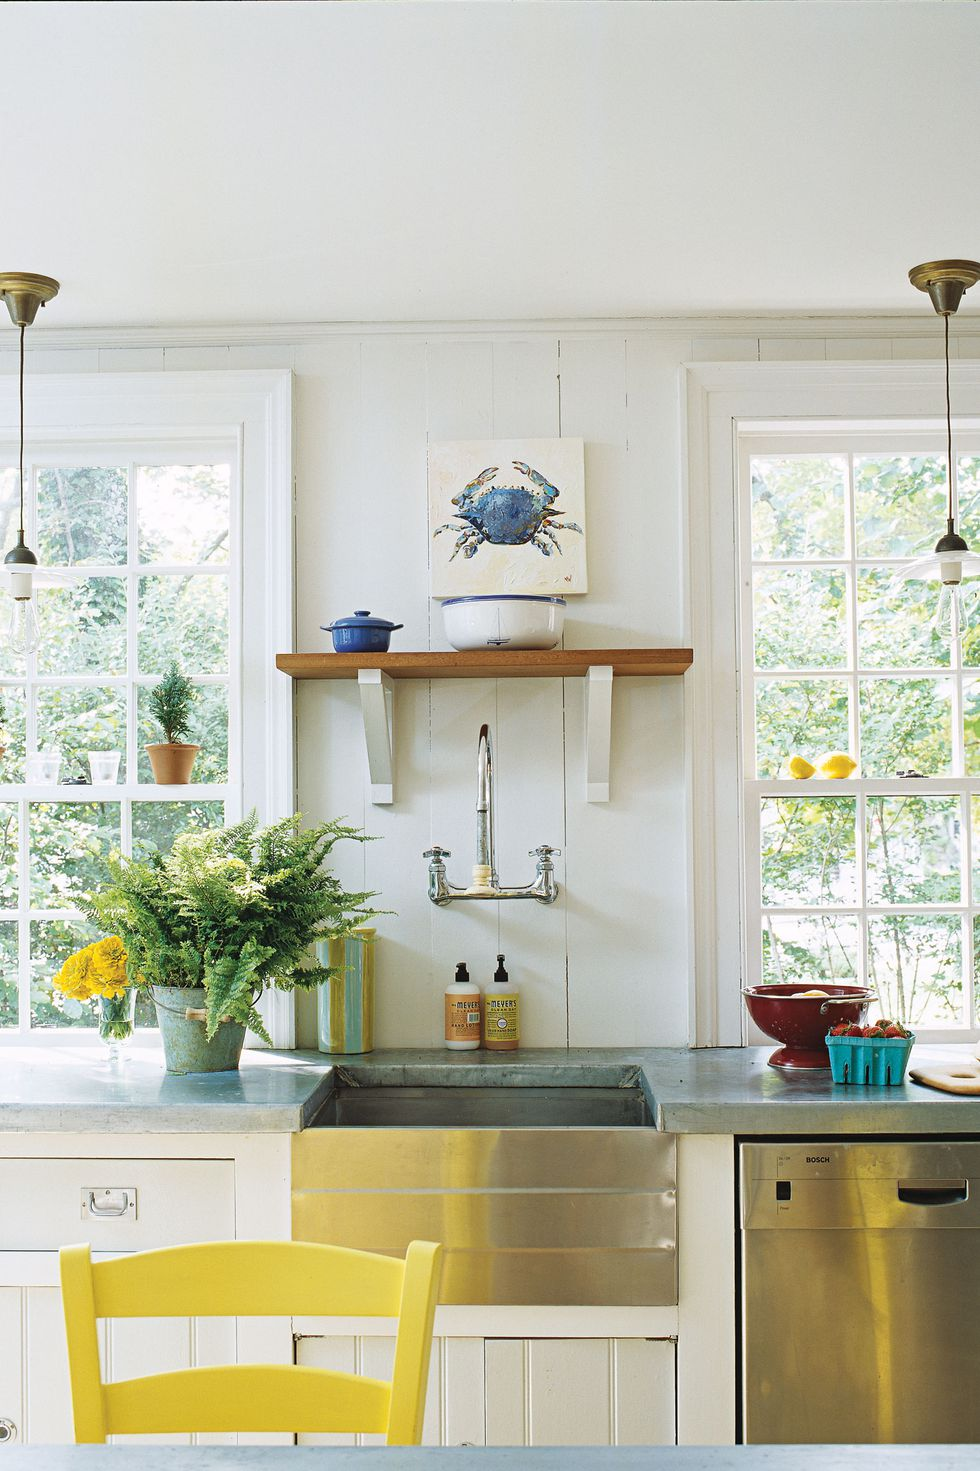 Kitchen countertop with flowers and yellow chair with wooden shelf